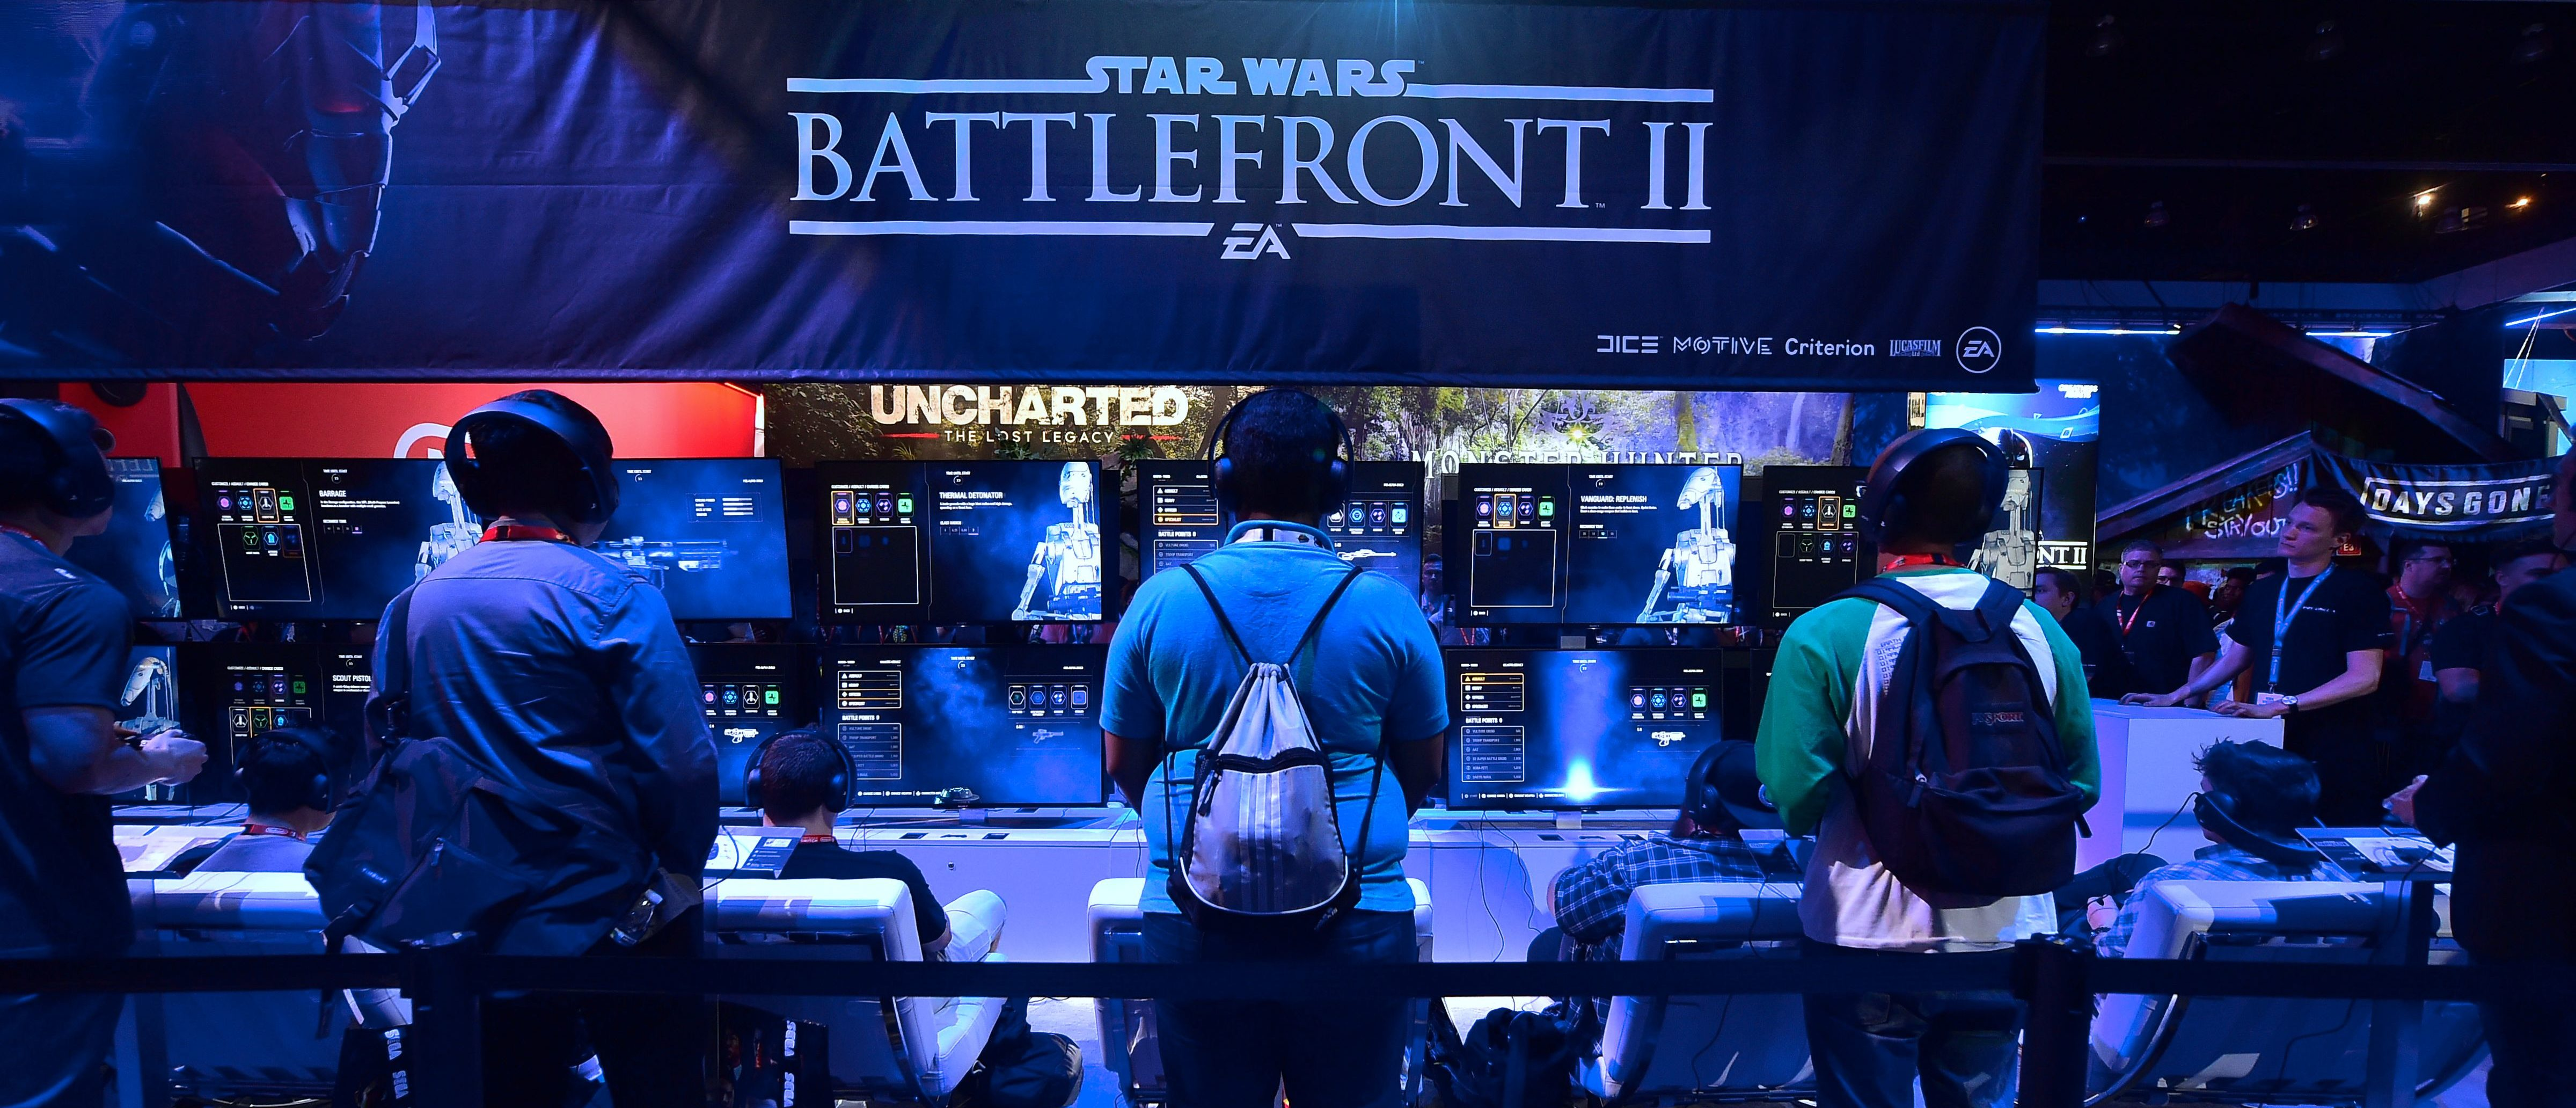 """Gaming fans play """"Star Wars Battlefront II"""" from EA Sports at the Los Angeles Convention Center on day one of E3 2017, the three day Electronic Entertainment Expo, one of the biggest events in the gaming industry calendar, on June 13, 2017 in Los Angeles, California. / AFP PHOTO / FREDERIC J. BROWN (Photo credit should read FREDERIC J. BROWN/AFP/Getty Images)"""